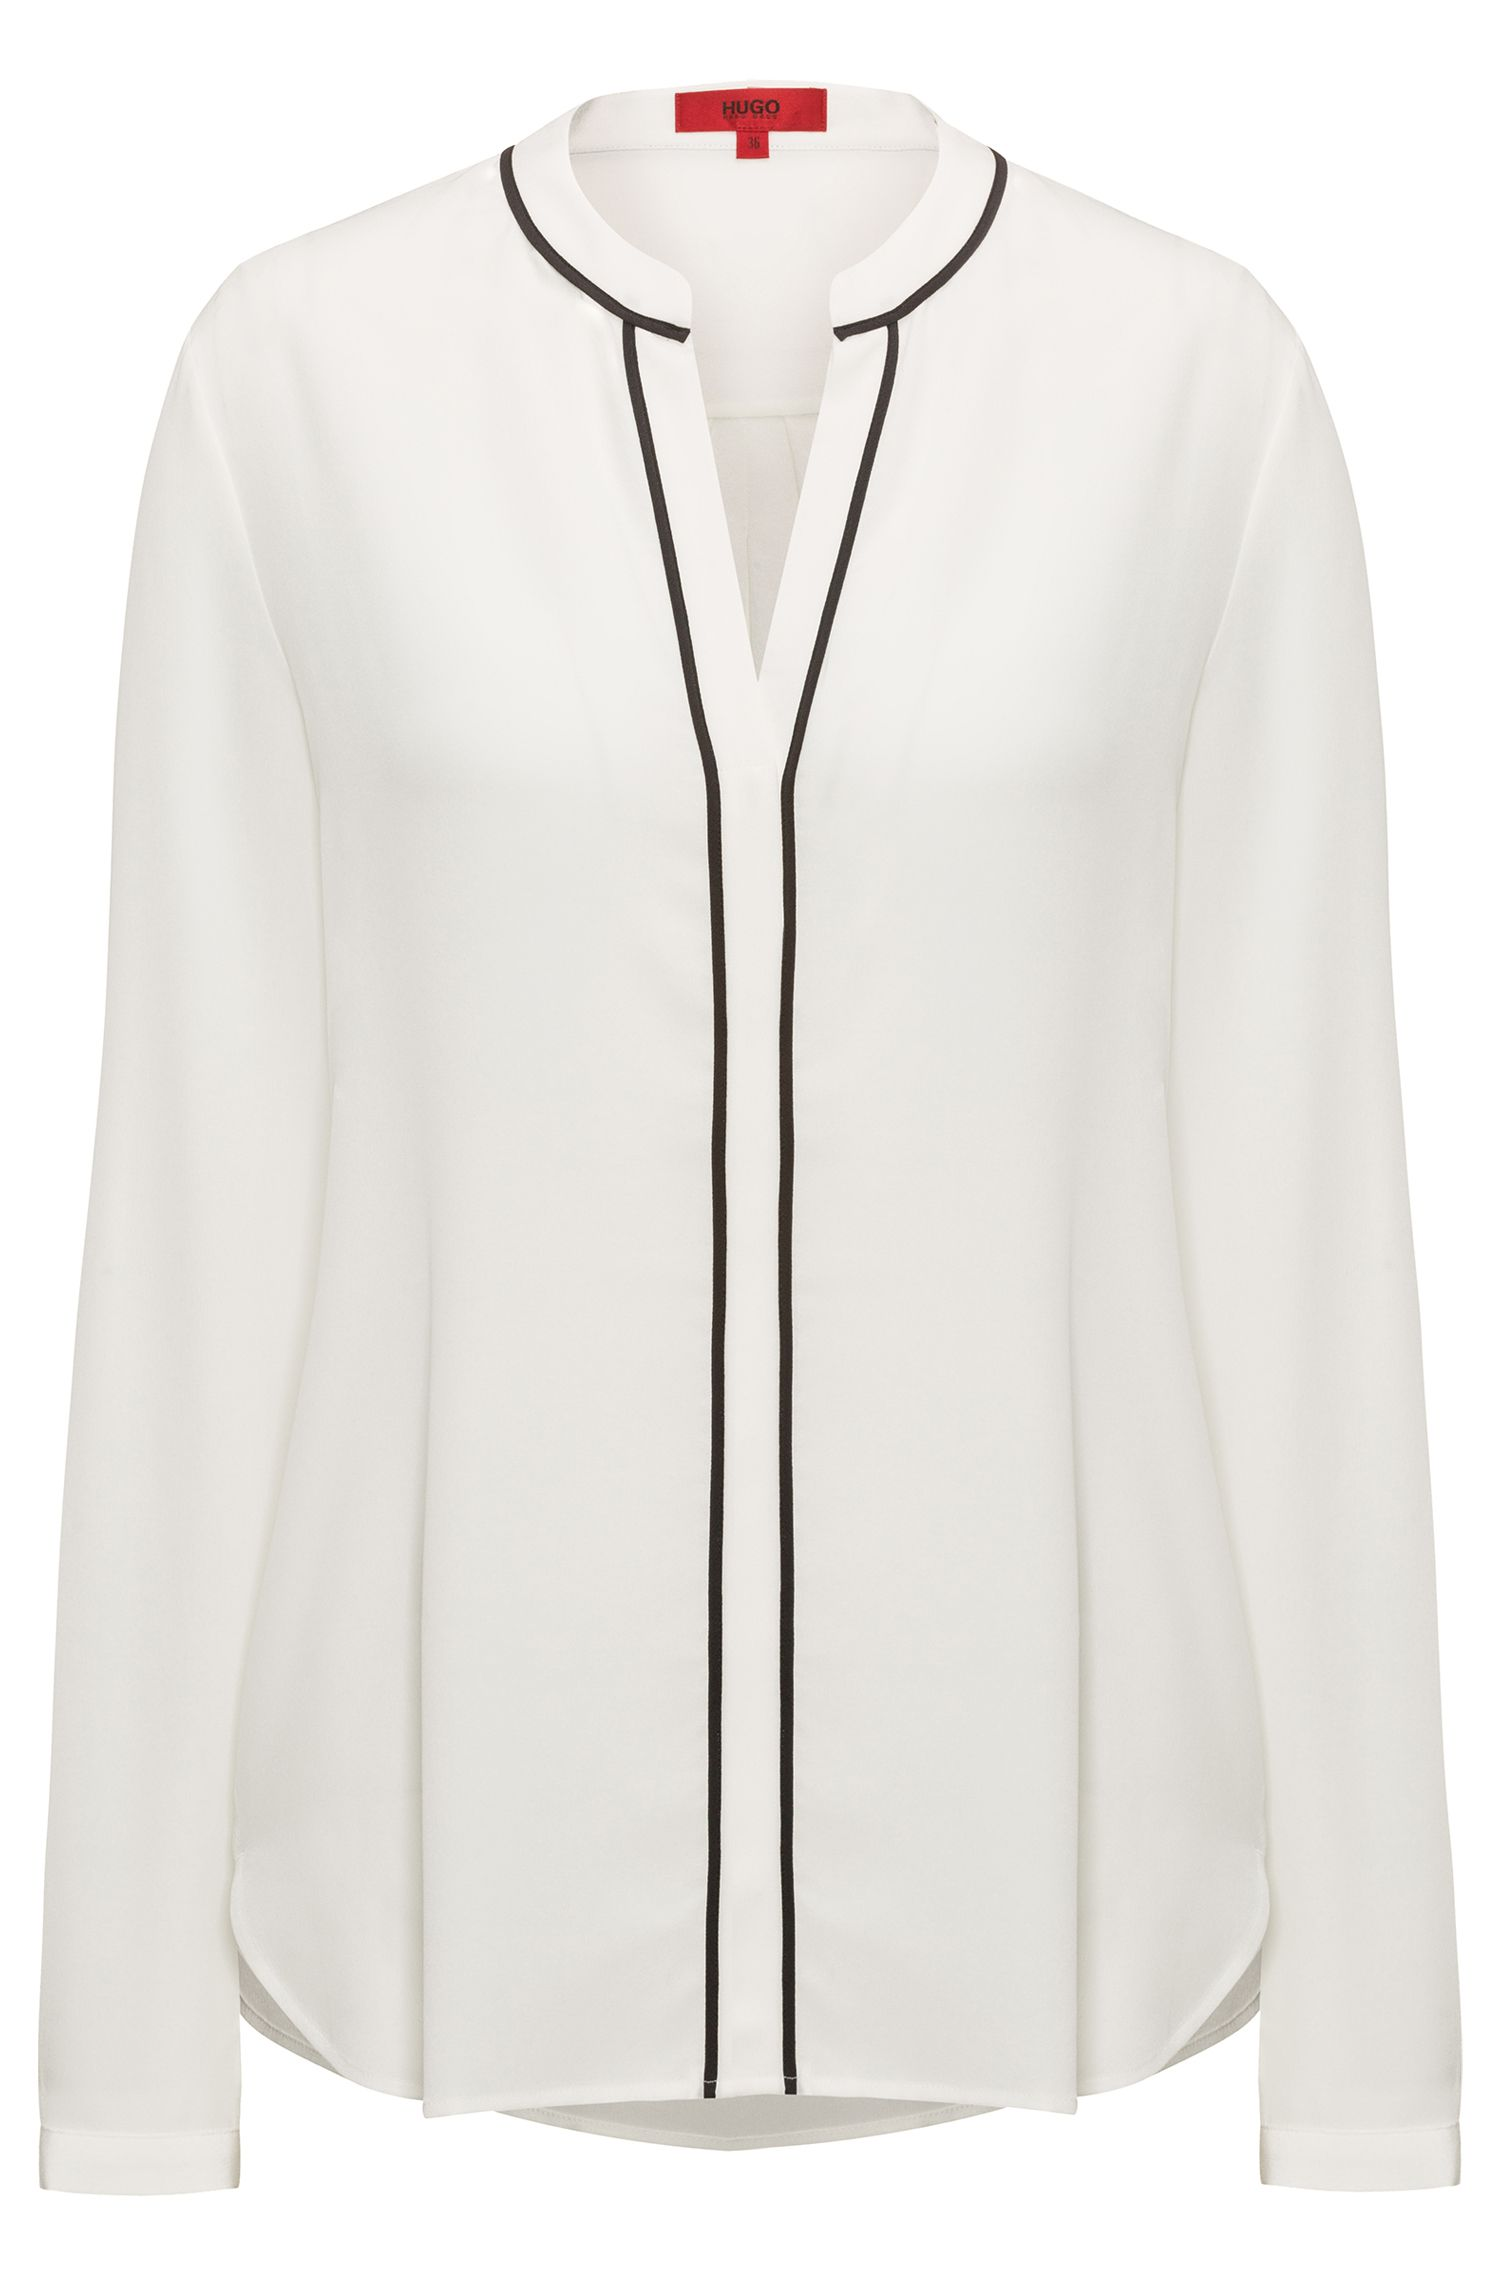 Open-neck silk blouse in a relaxed fit